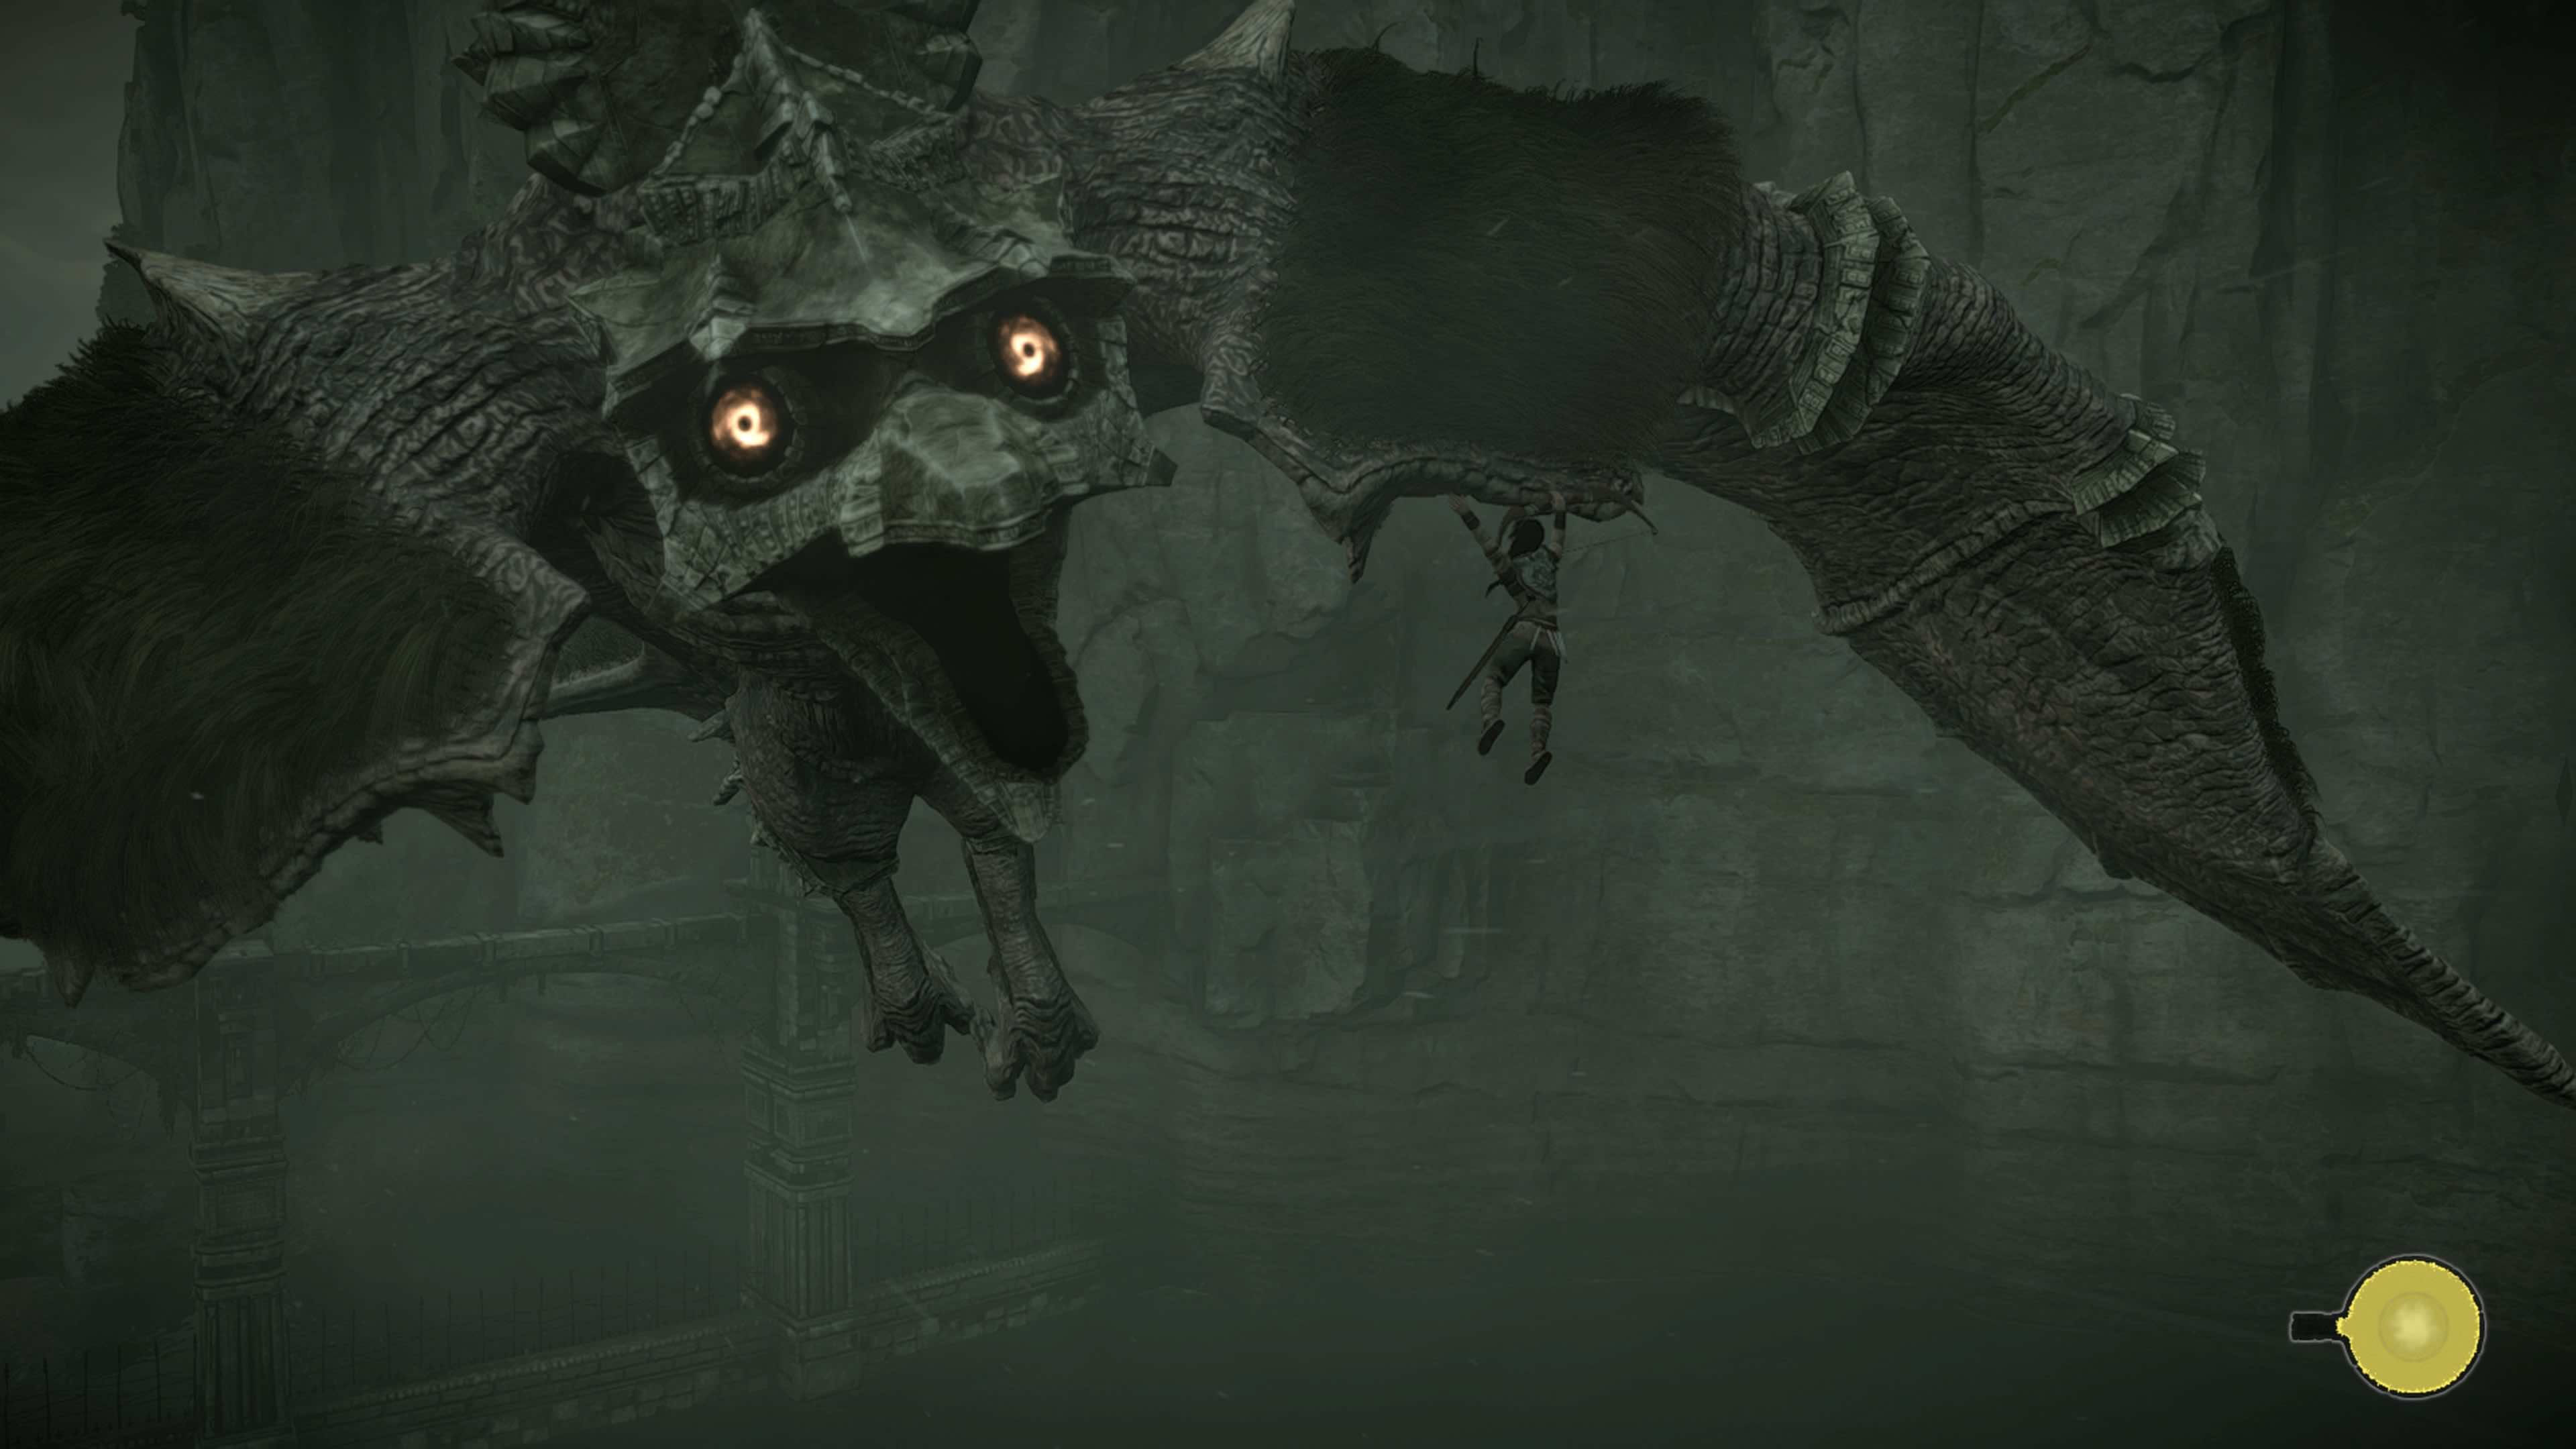 Shadow_of_the_Colossus_Avance_2